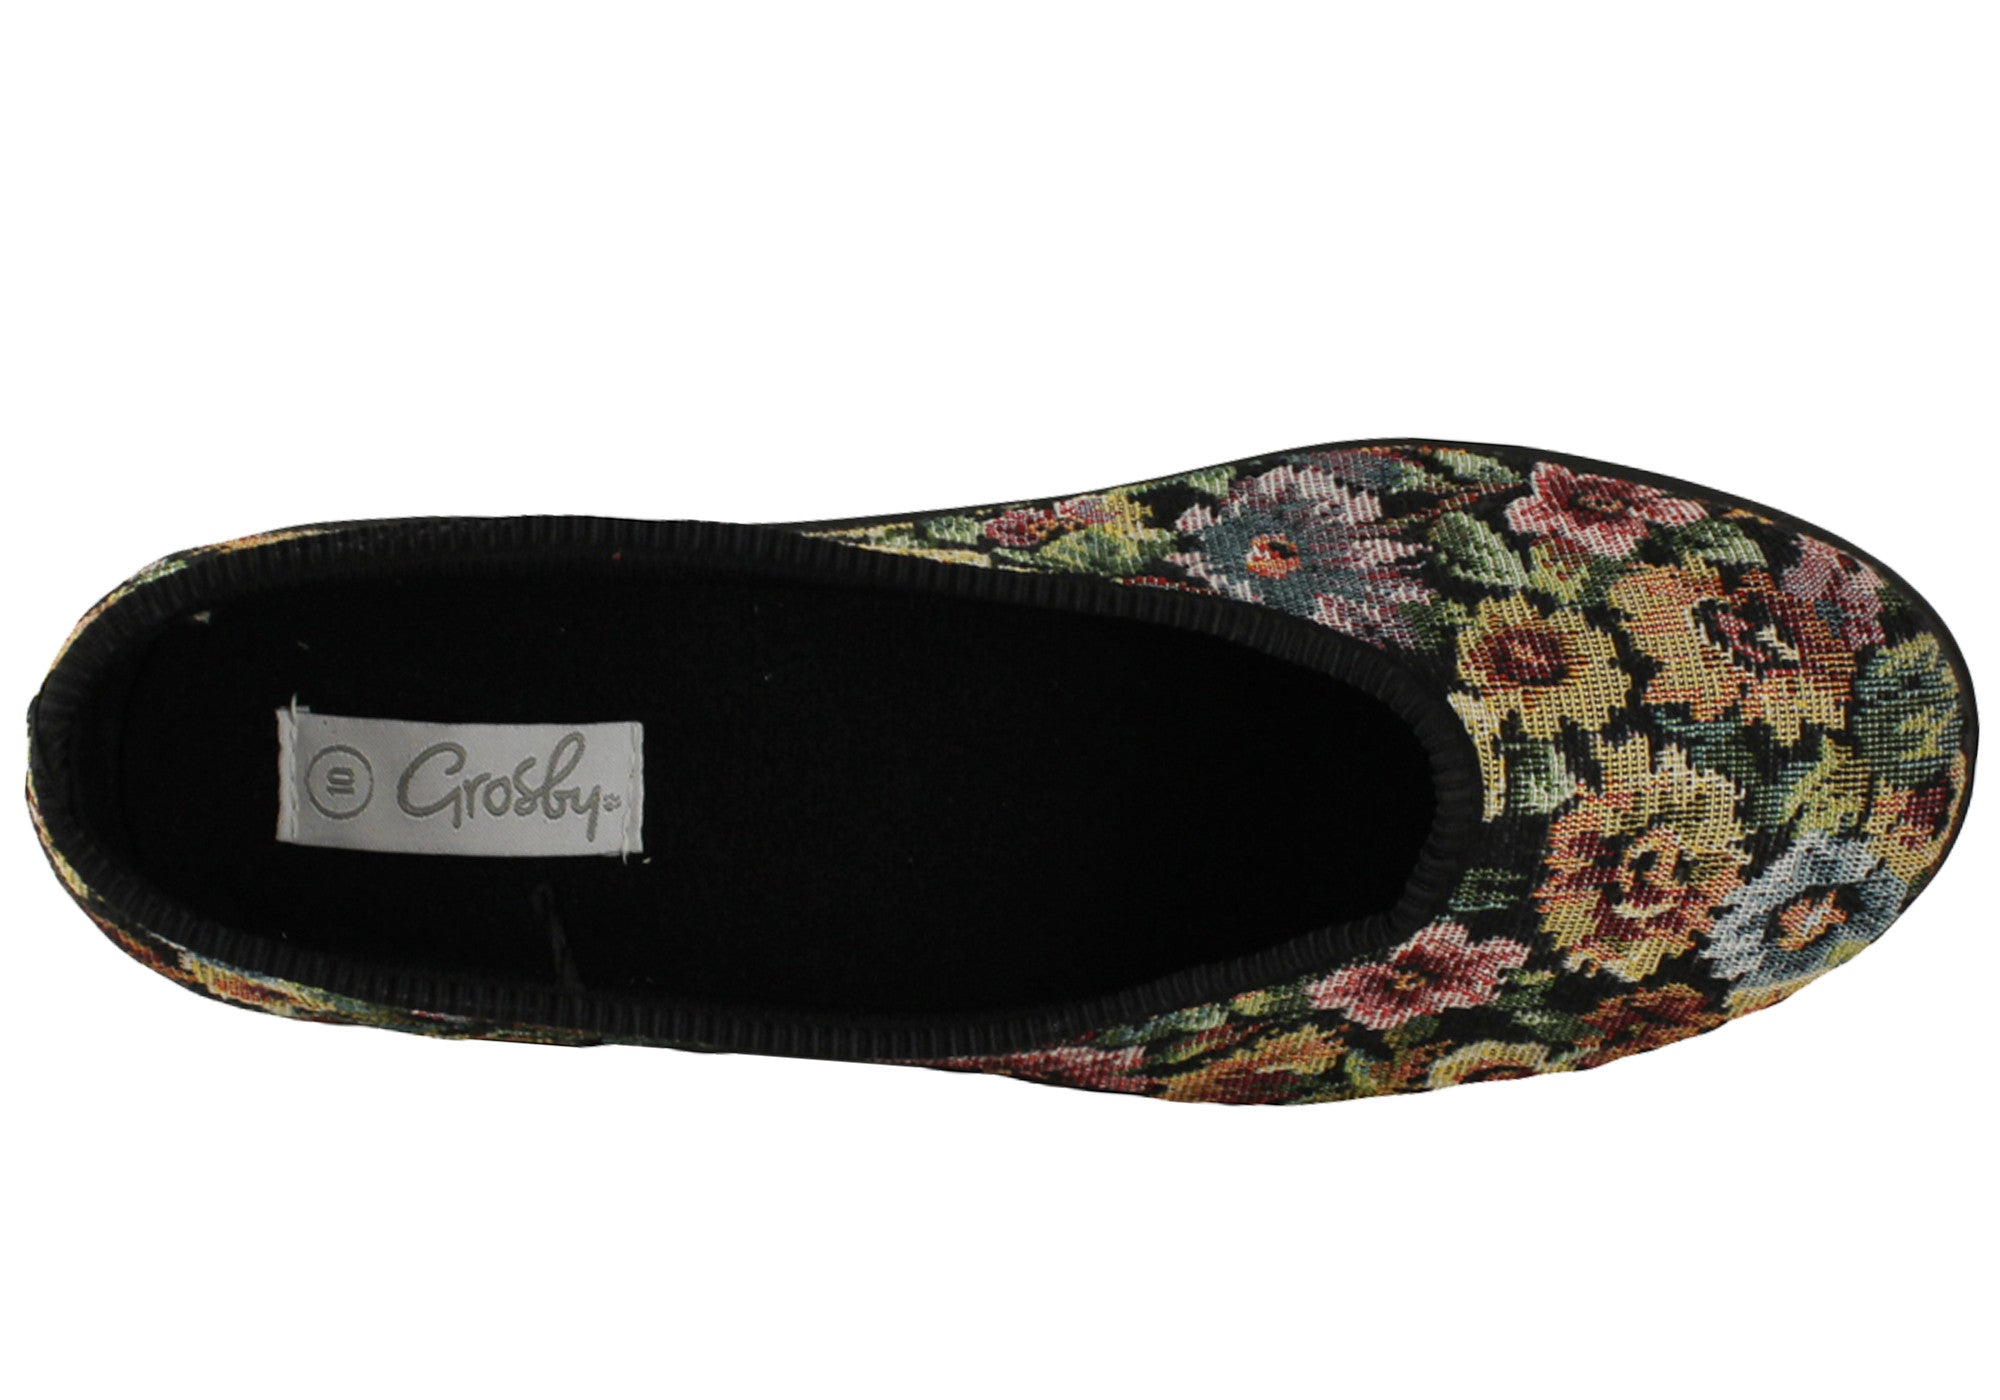 Grosby Carol Womens Comfortable Indoor Slippers